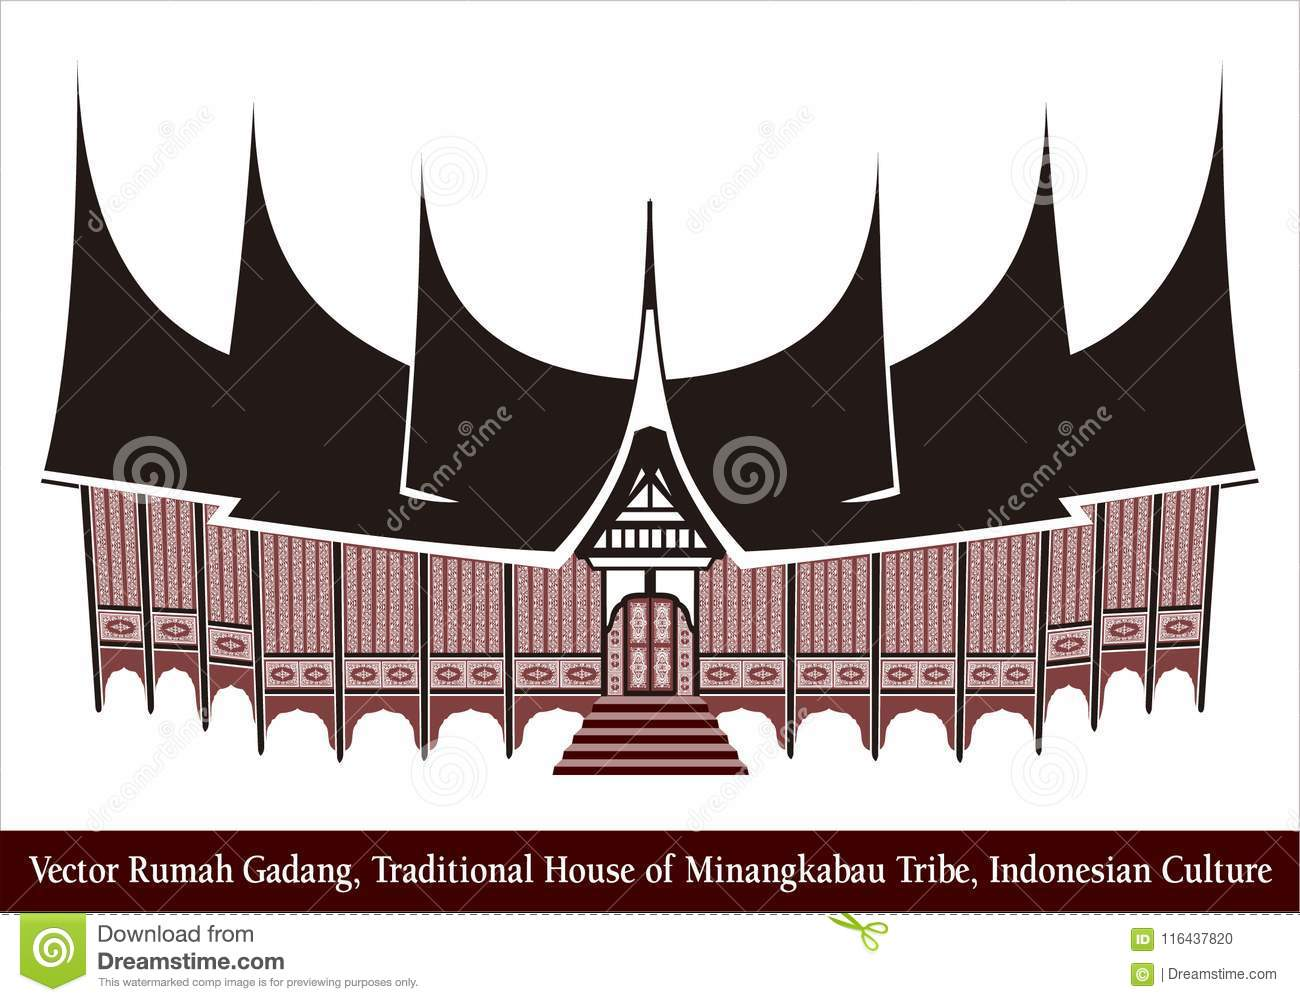 minangkabau stock illustrations 27 minangkabau stock illustrations vectors clipart dreamstime https www dreamstime com vector rumah gadang traditional house minangkabau tribe indonesian culture image116437820